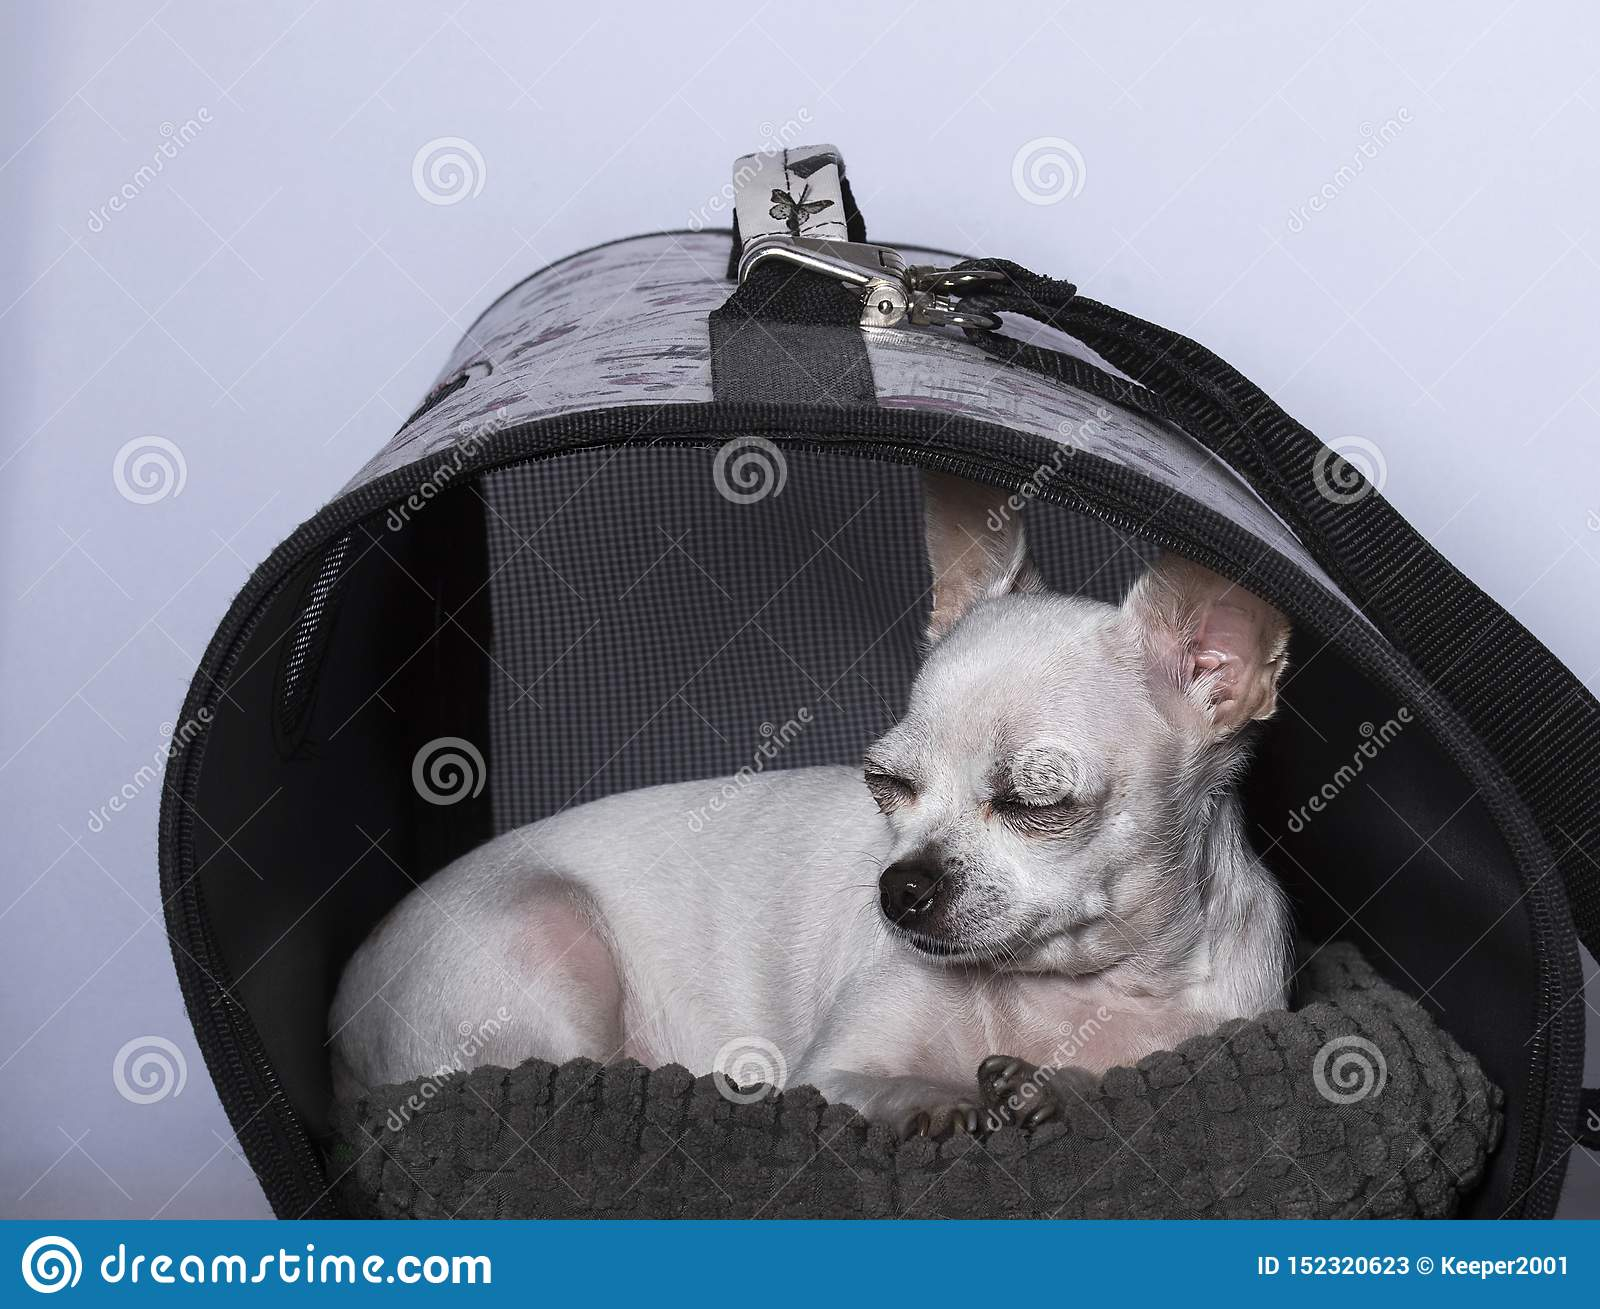 Chihuahua dog sleeping in the booth